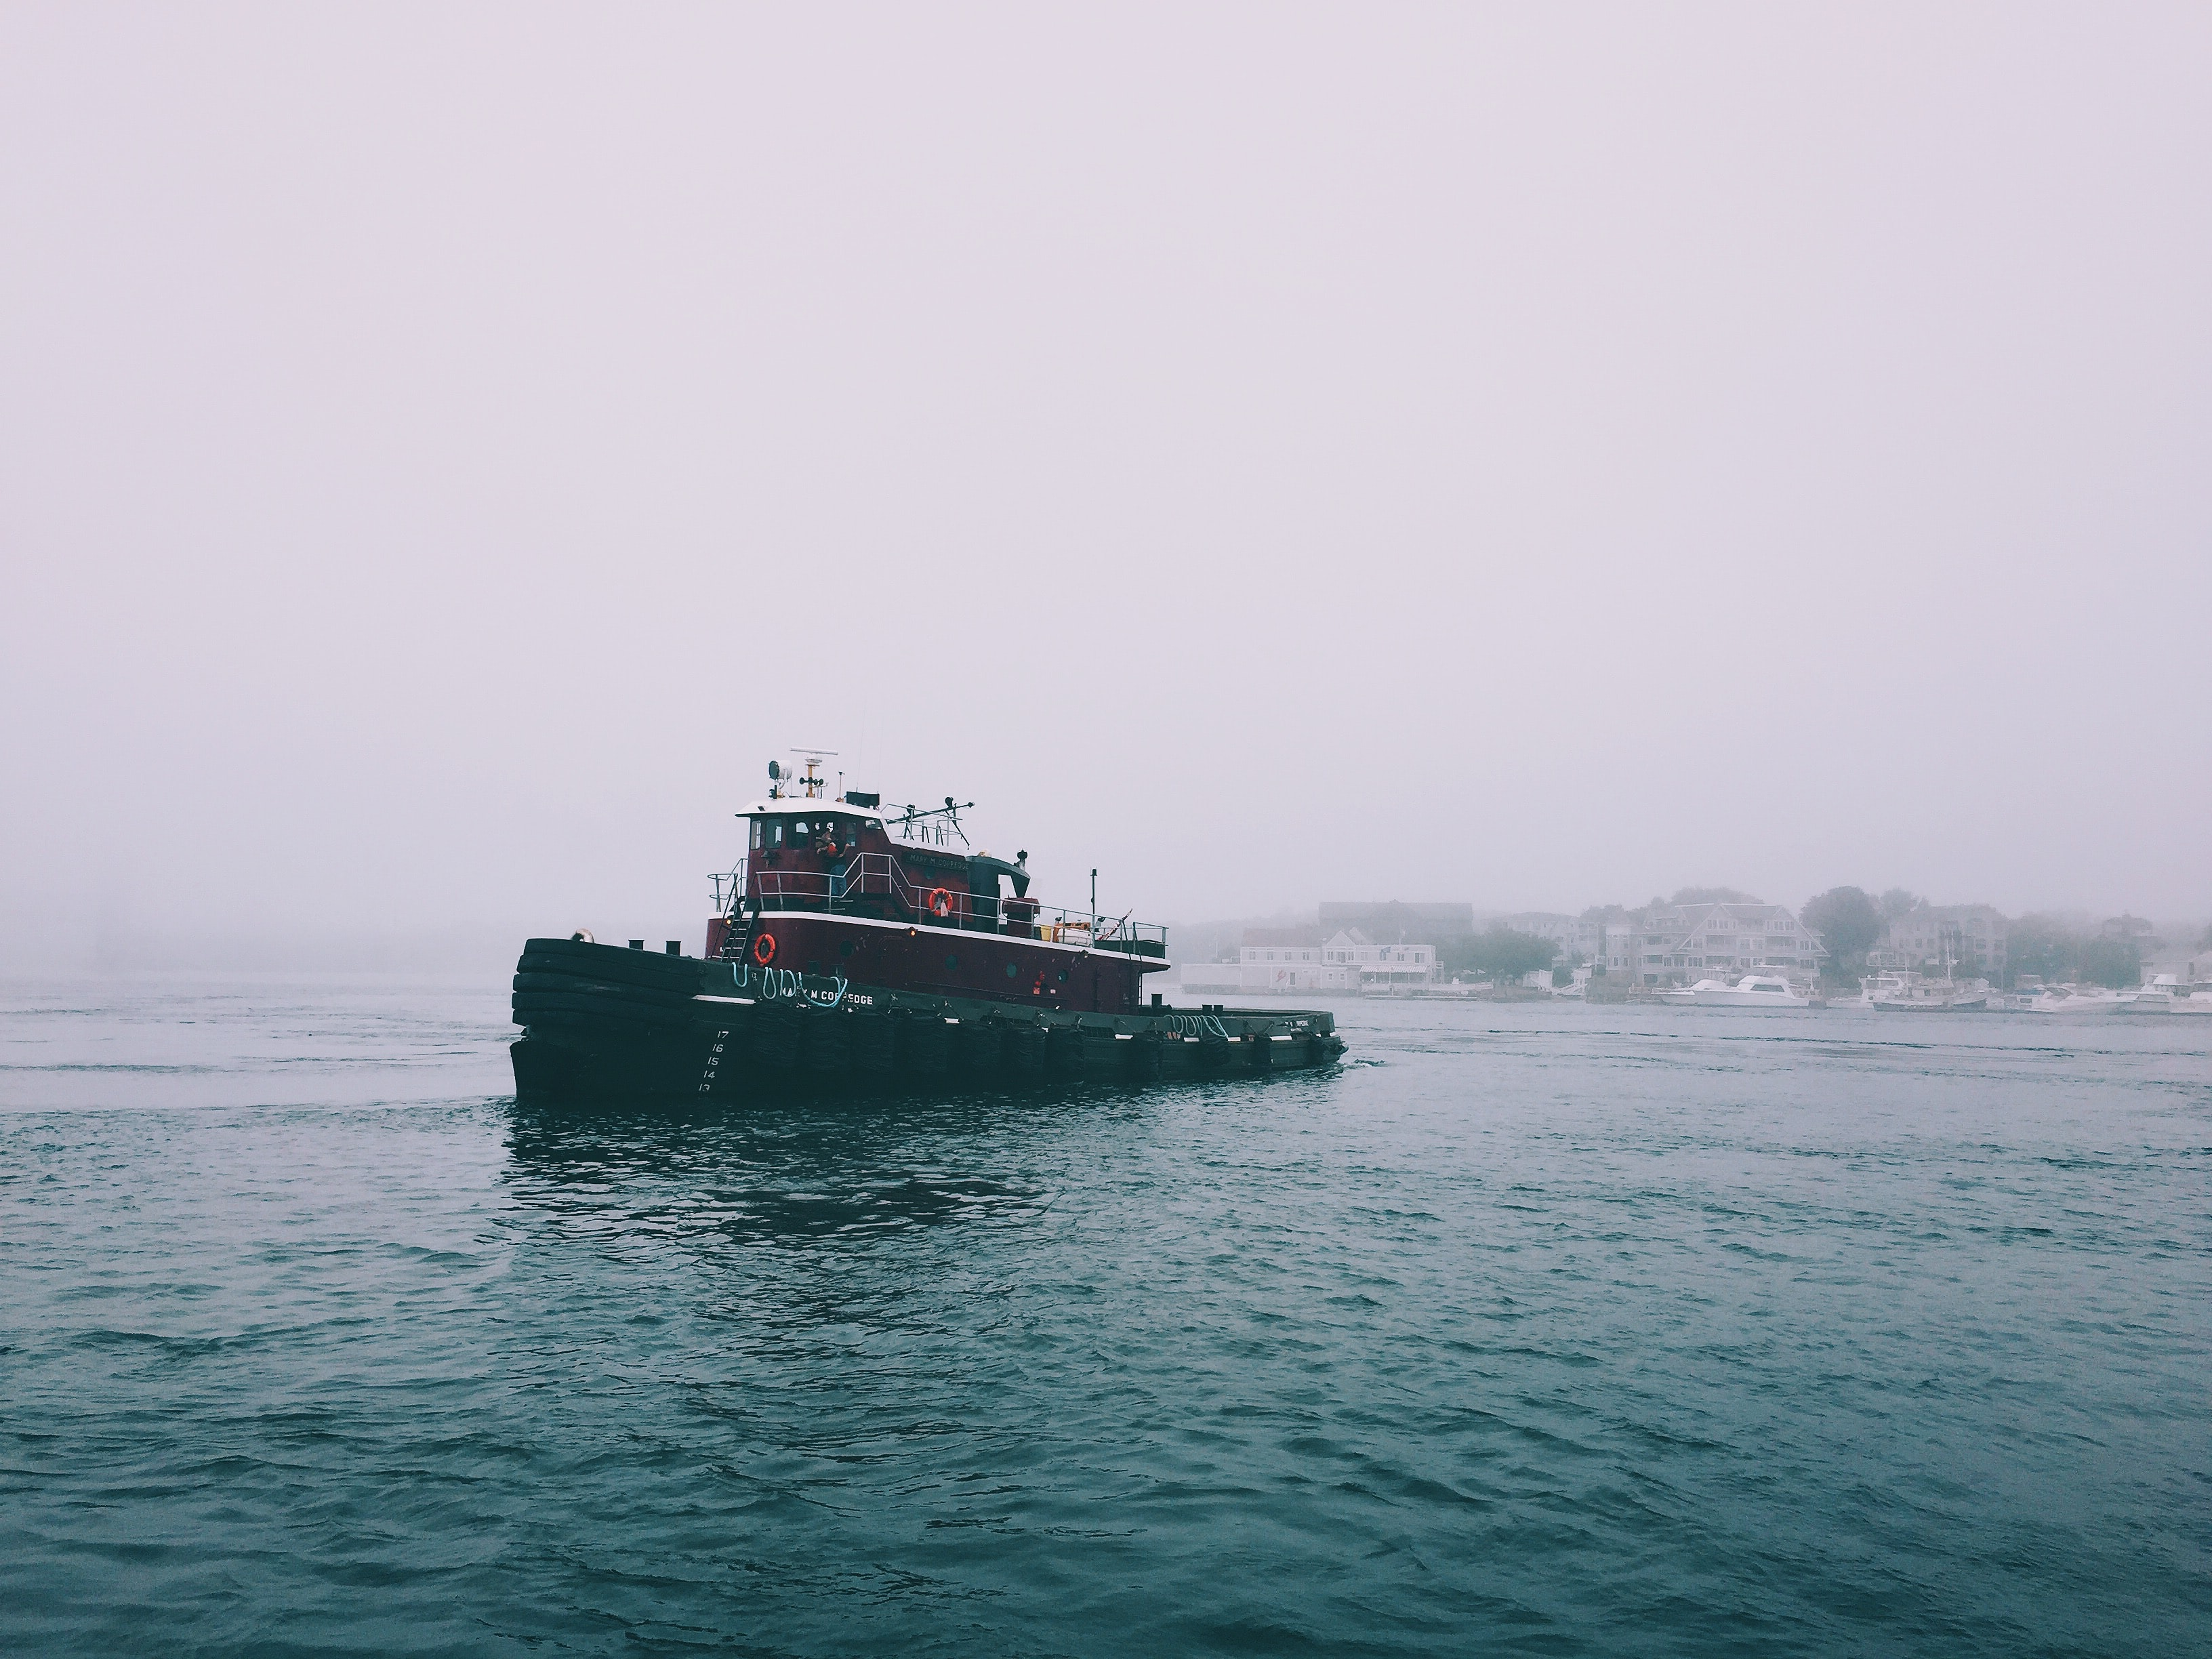 Ferry boat crosses a foggy bay off the coast of New Hampshire